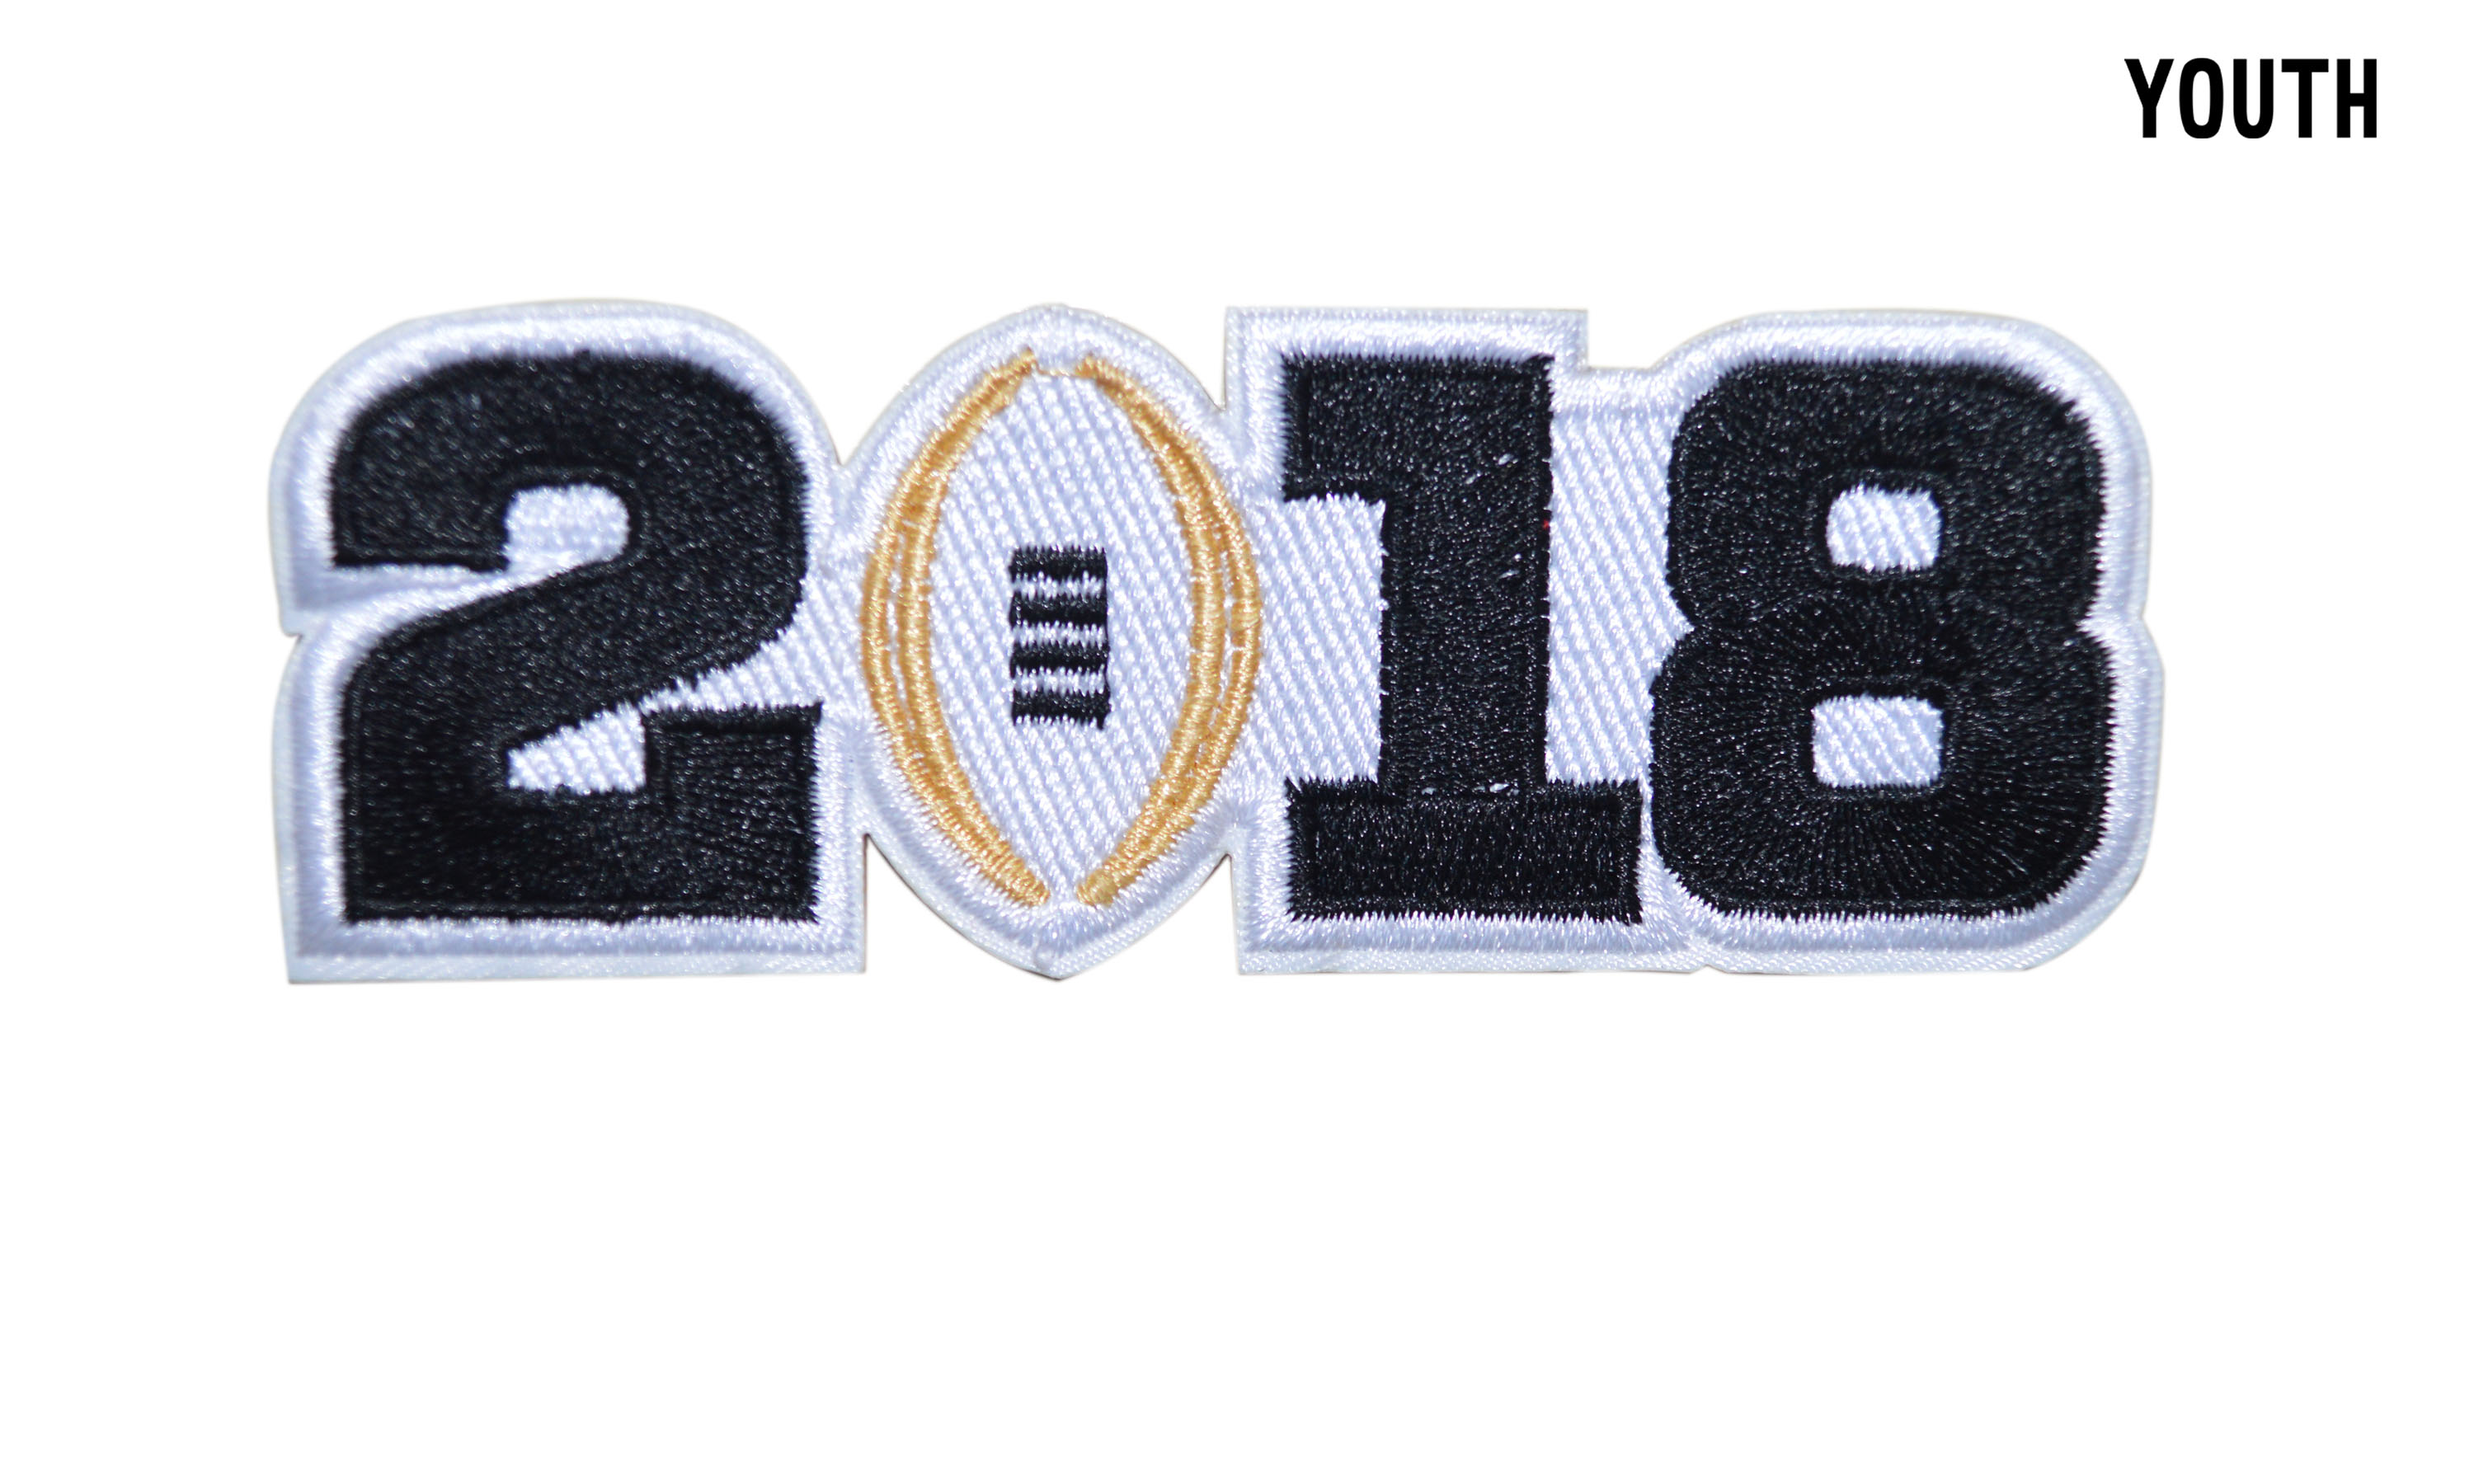 Youth 2018 College Football National Championship Patch White